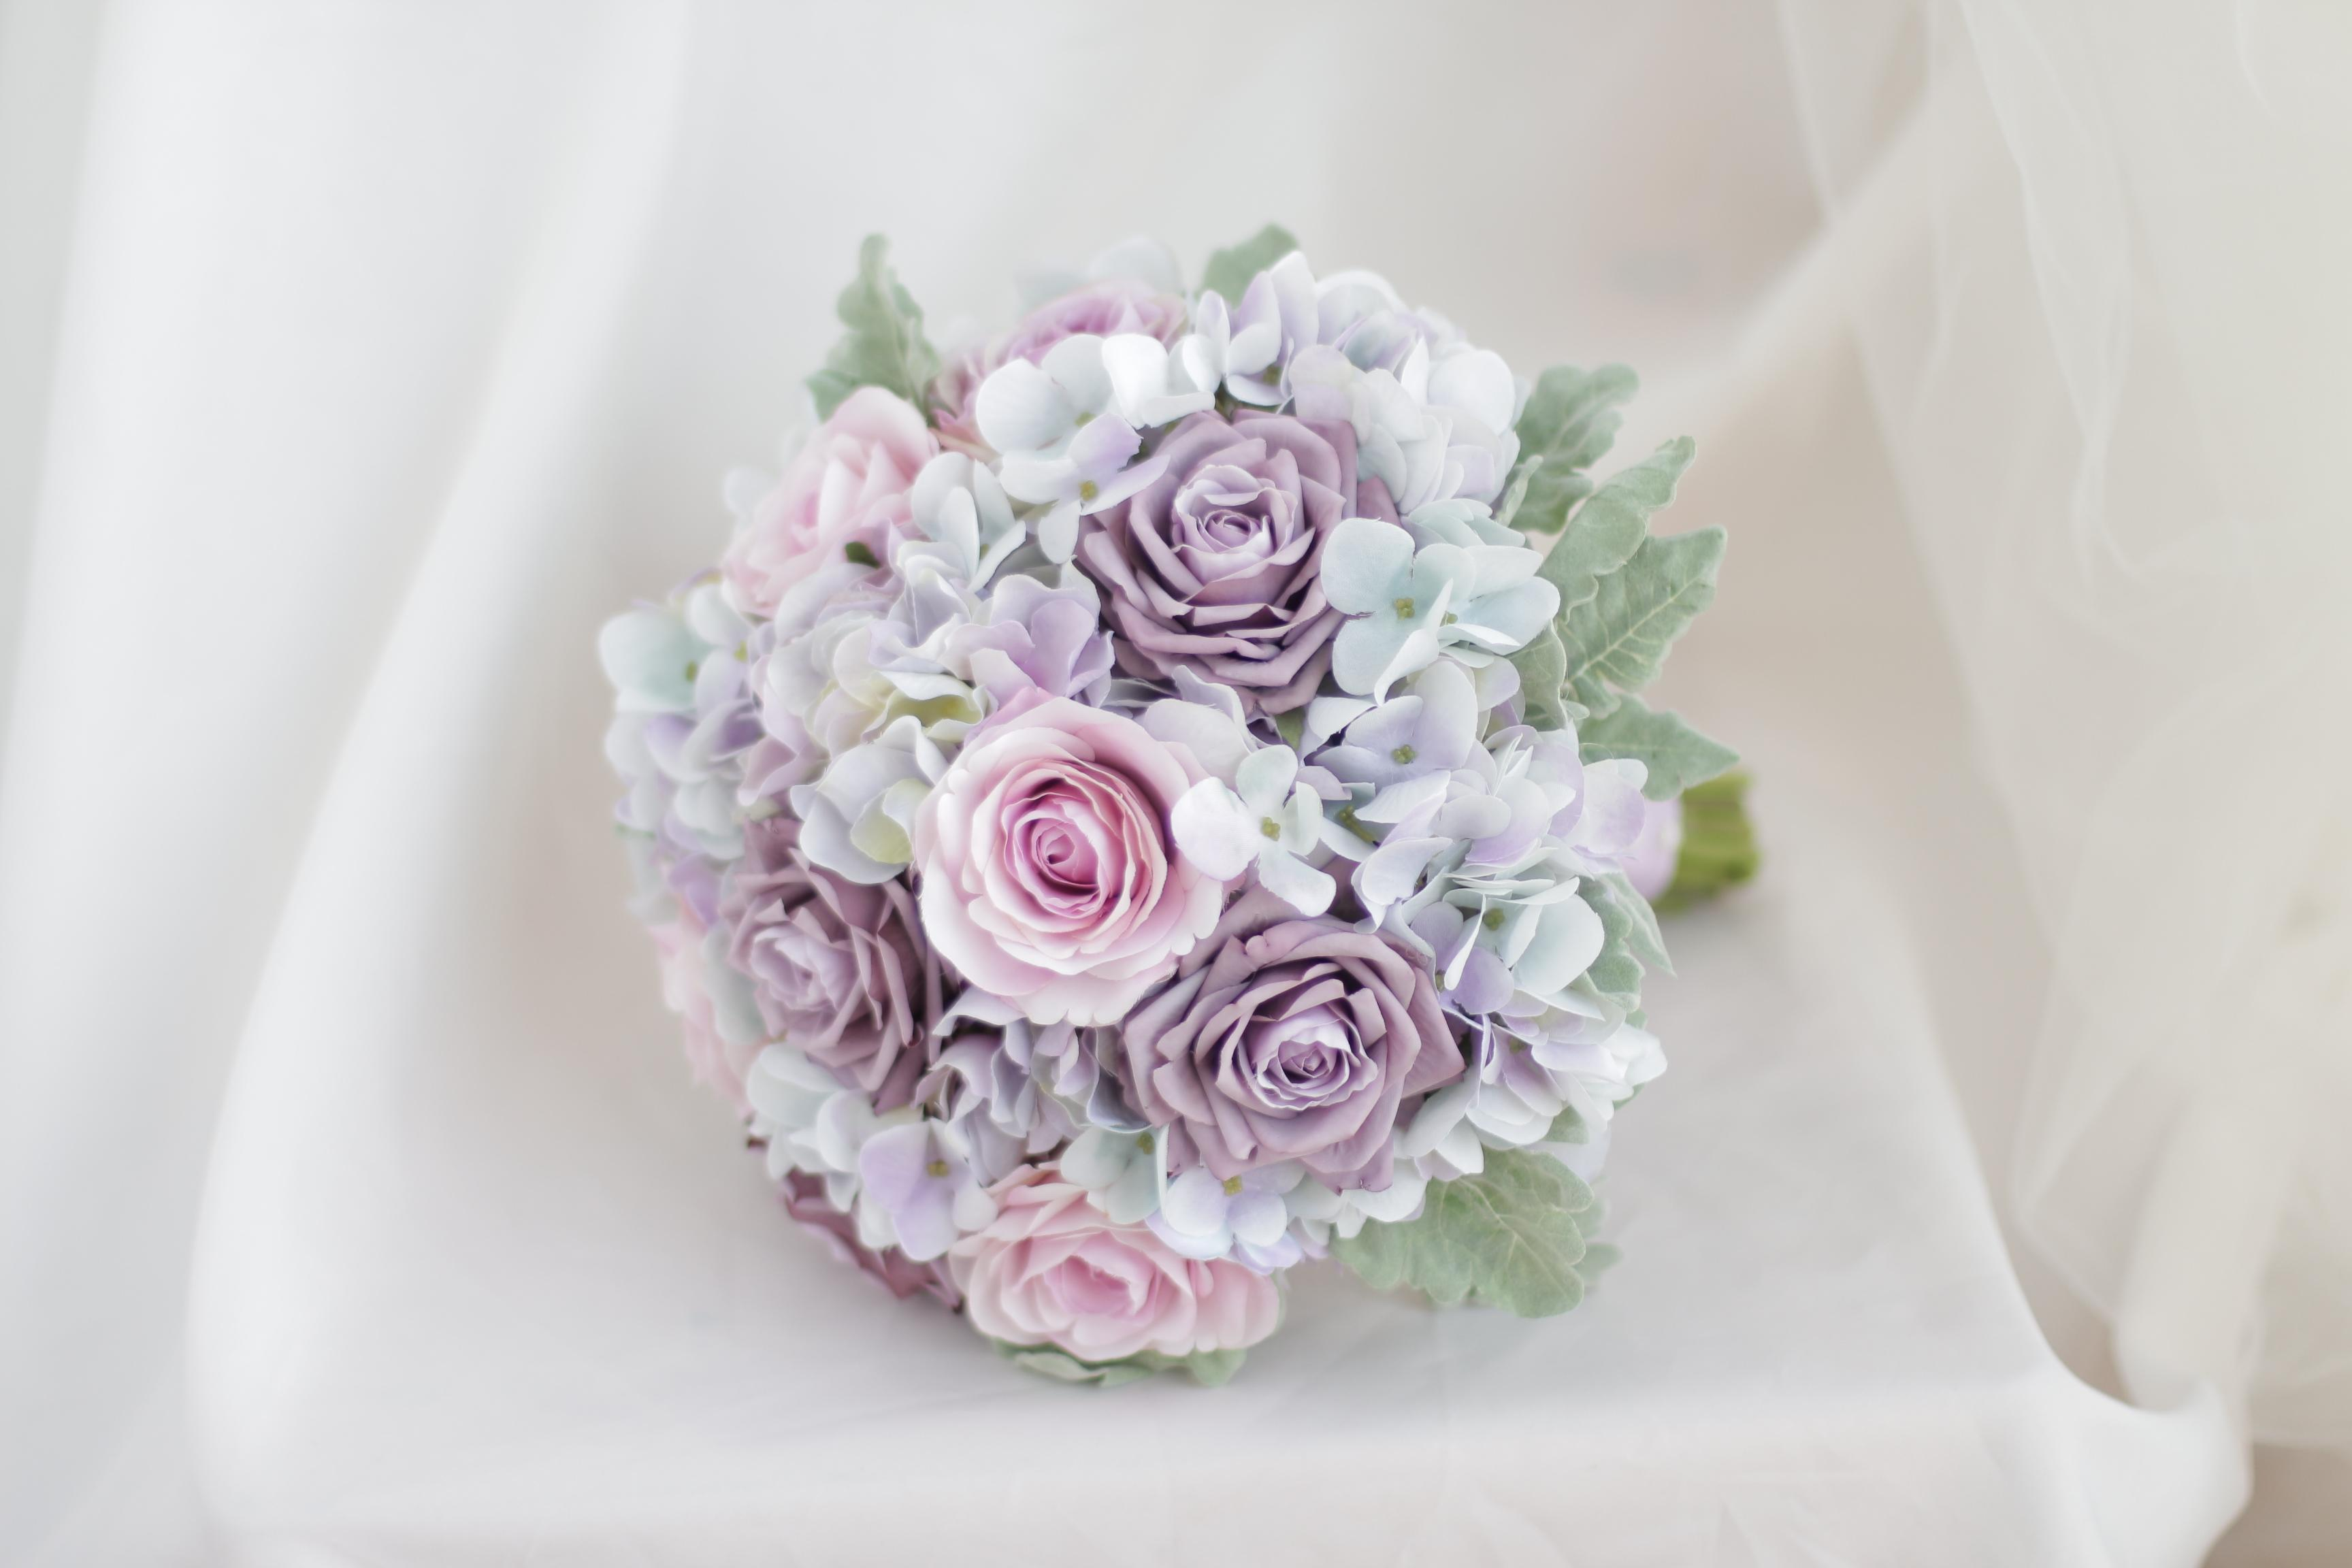 Bridal Bouquet Pink Rose Pink Rose Hydrangea Forest Department Of The Wind  Wedding Bouquet Wedding Flowers Preservation Wedding Flowers West Midlands  From ...